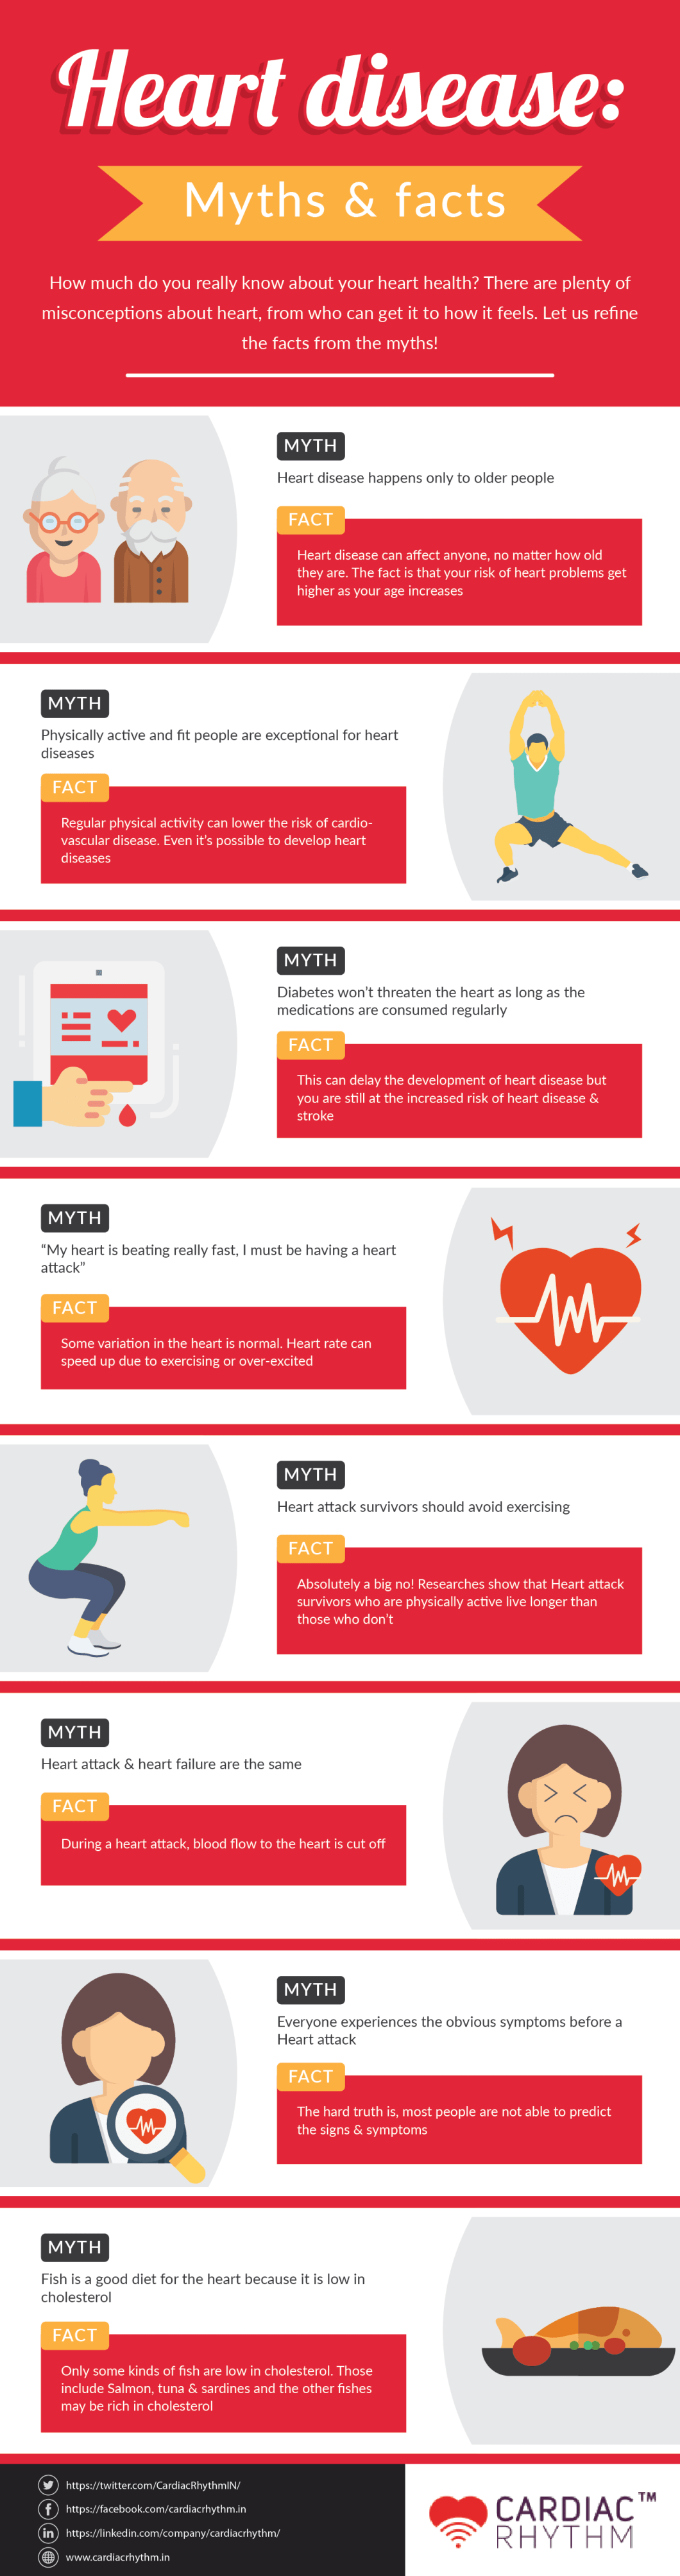 8 Misperceptions of Heart Disease and the Facts - Infographic